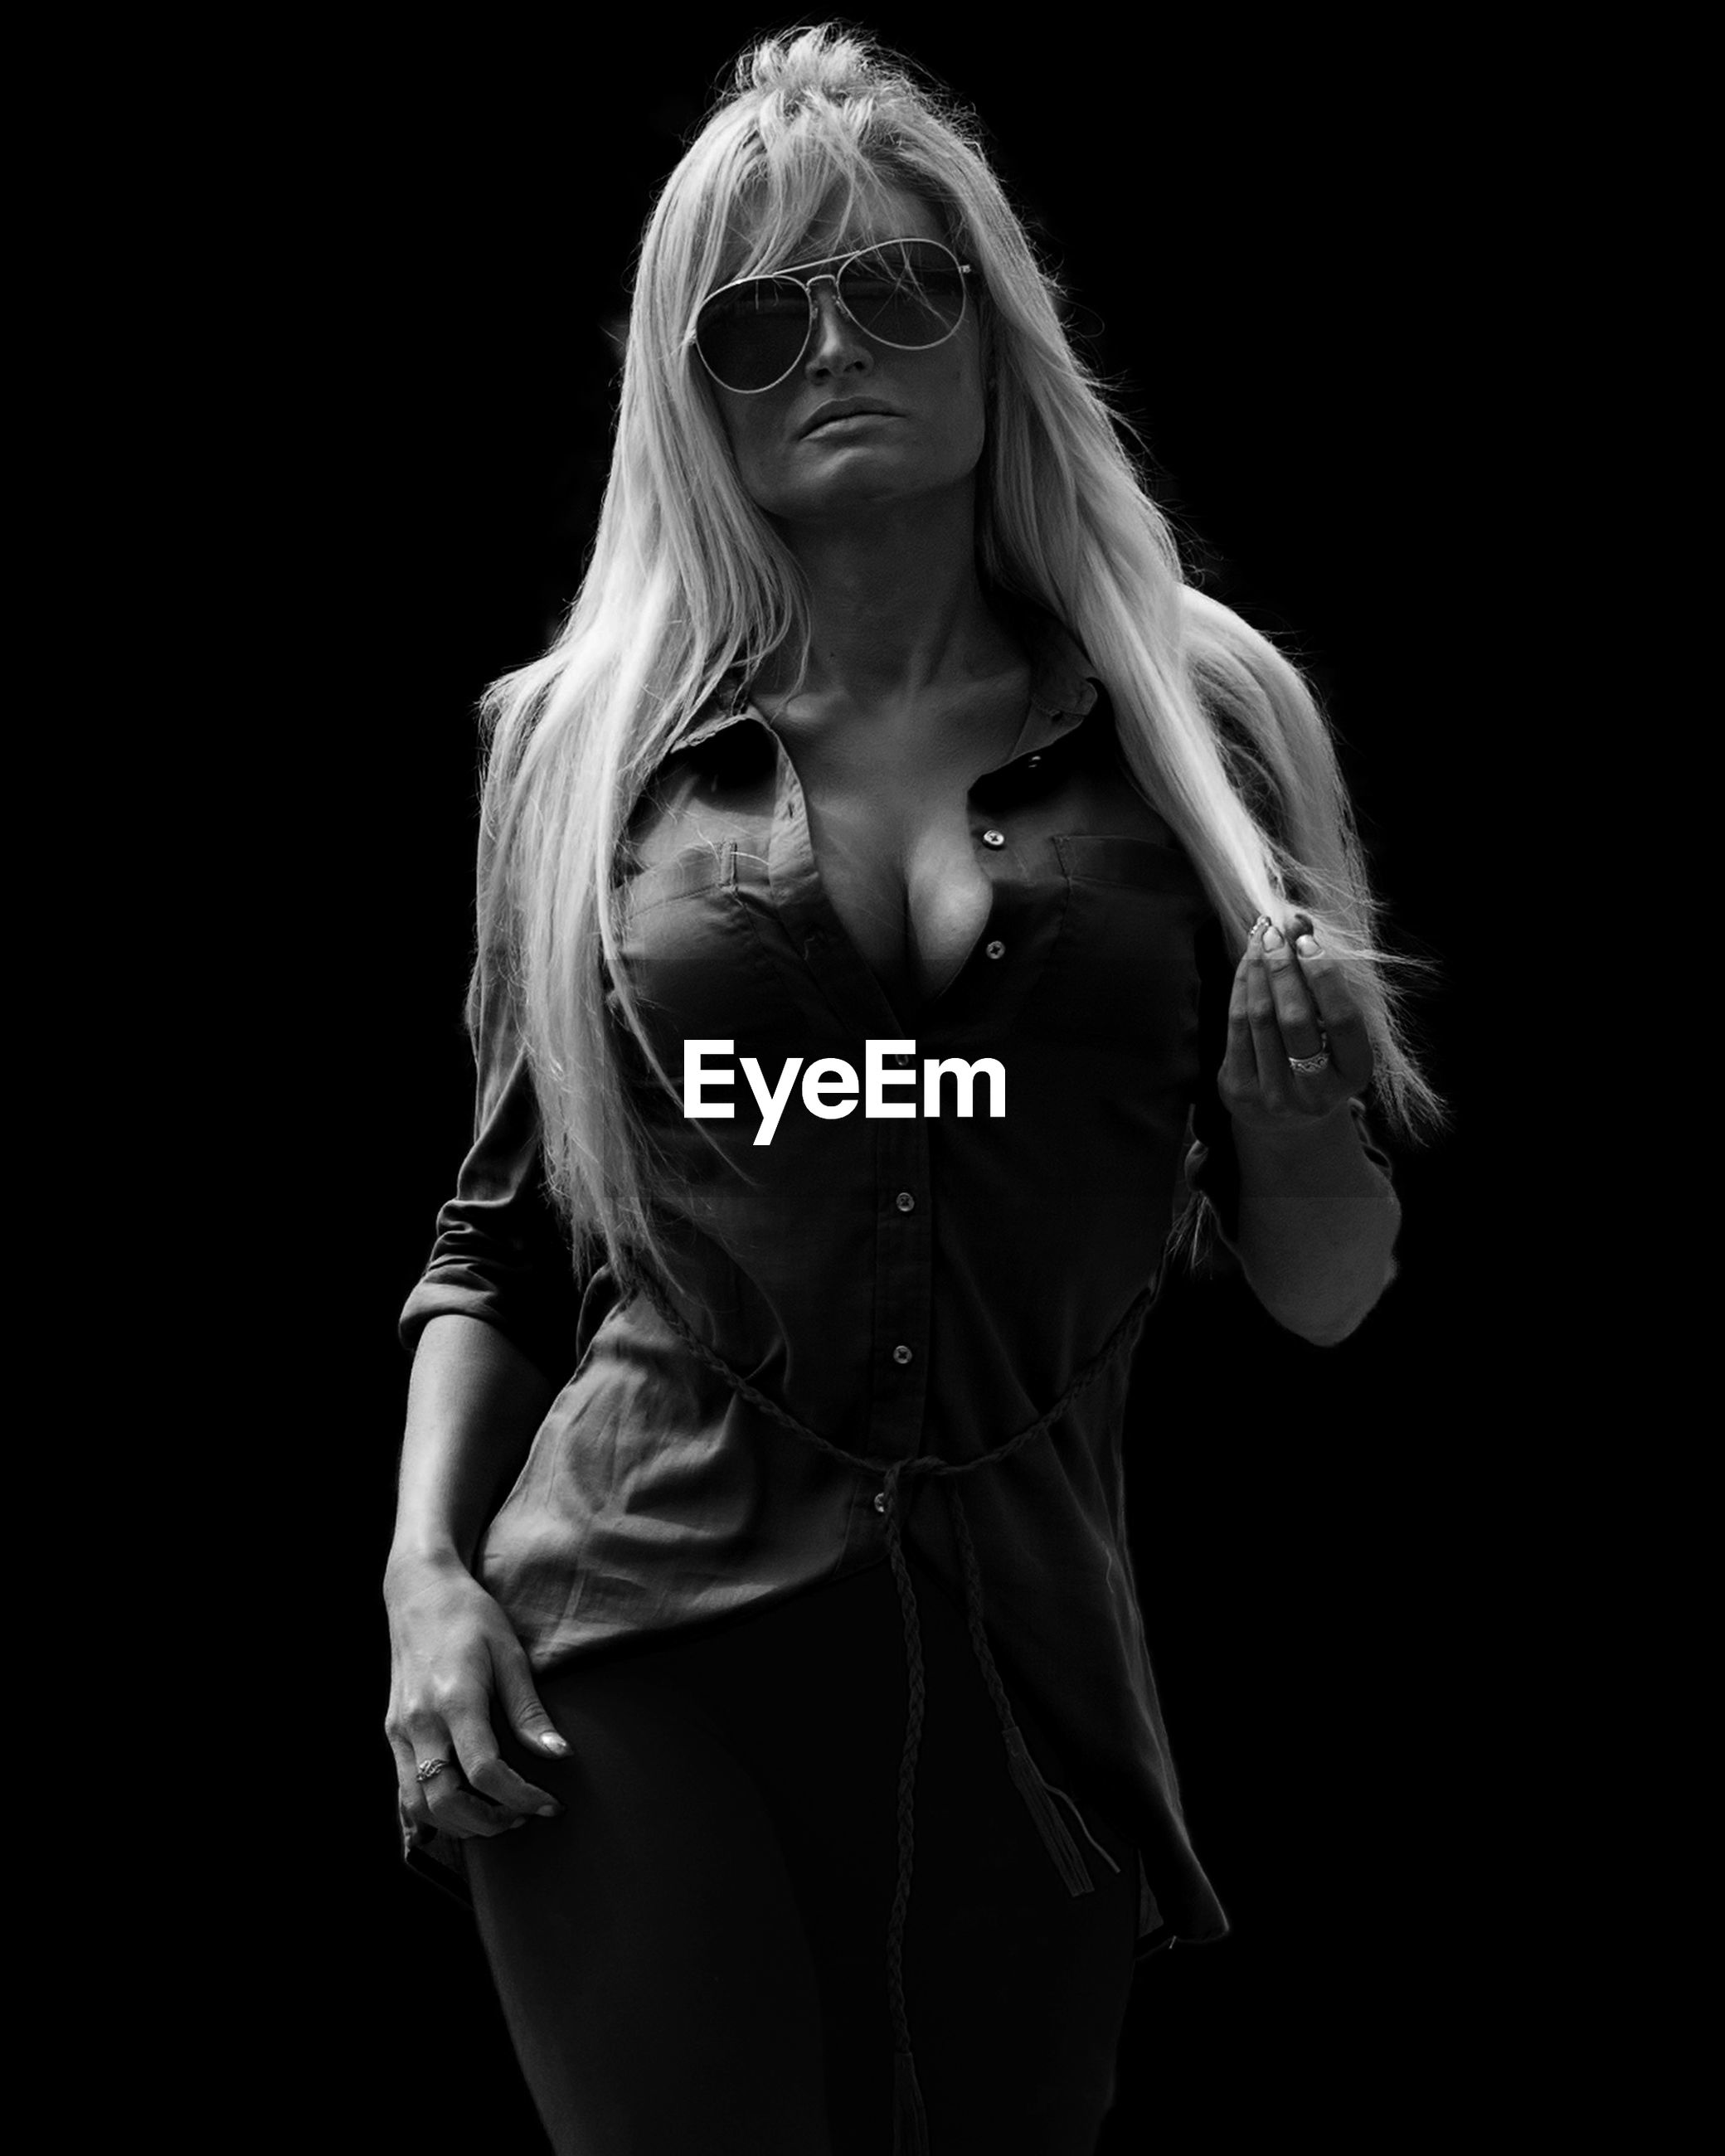 Portrait of young woman wearing sunglasses while standing against black background